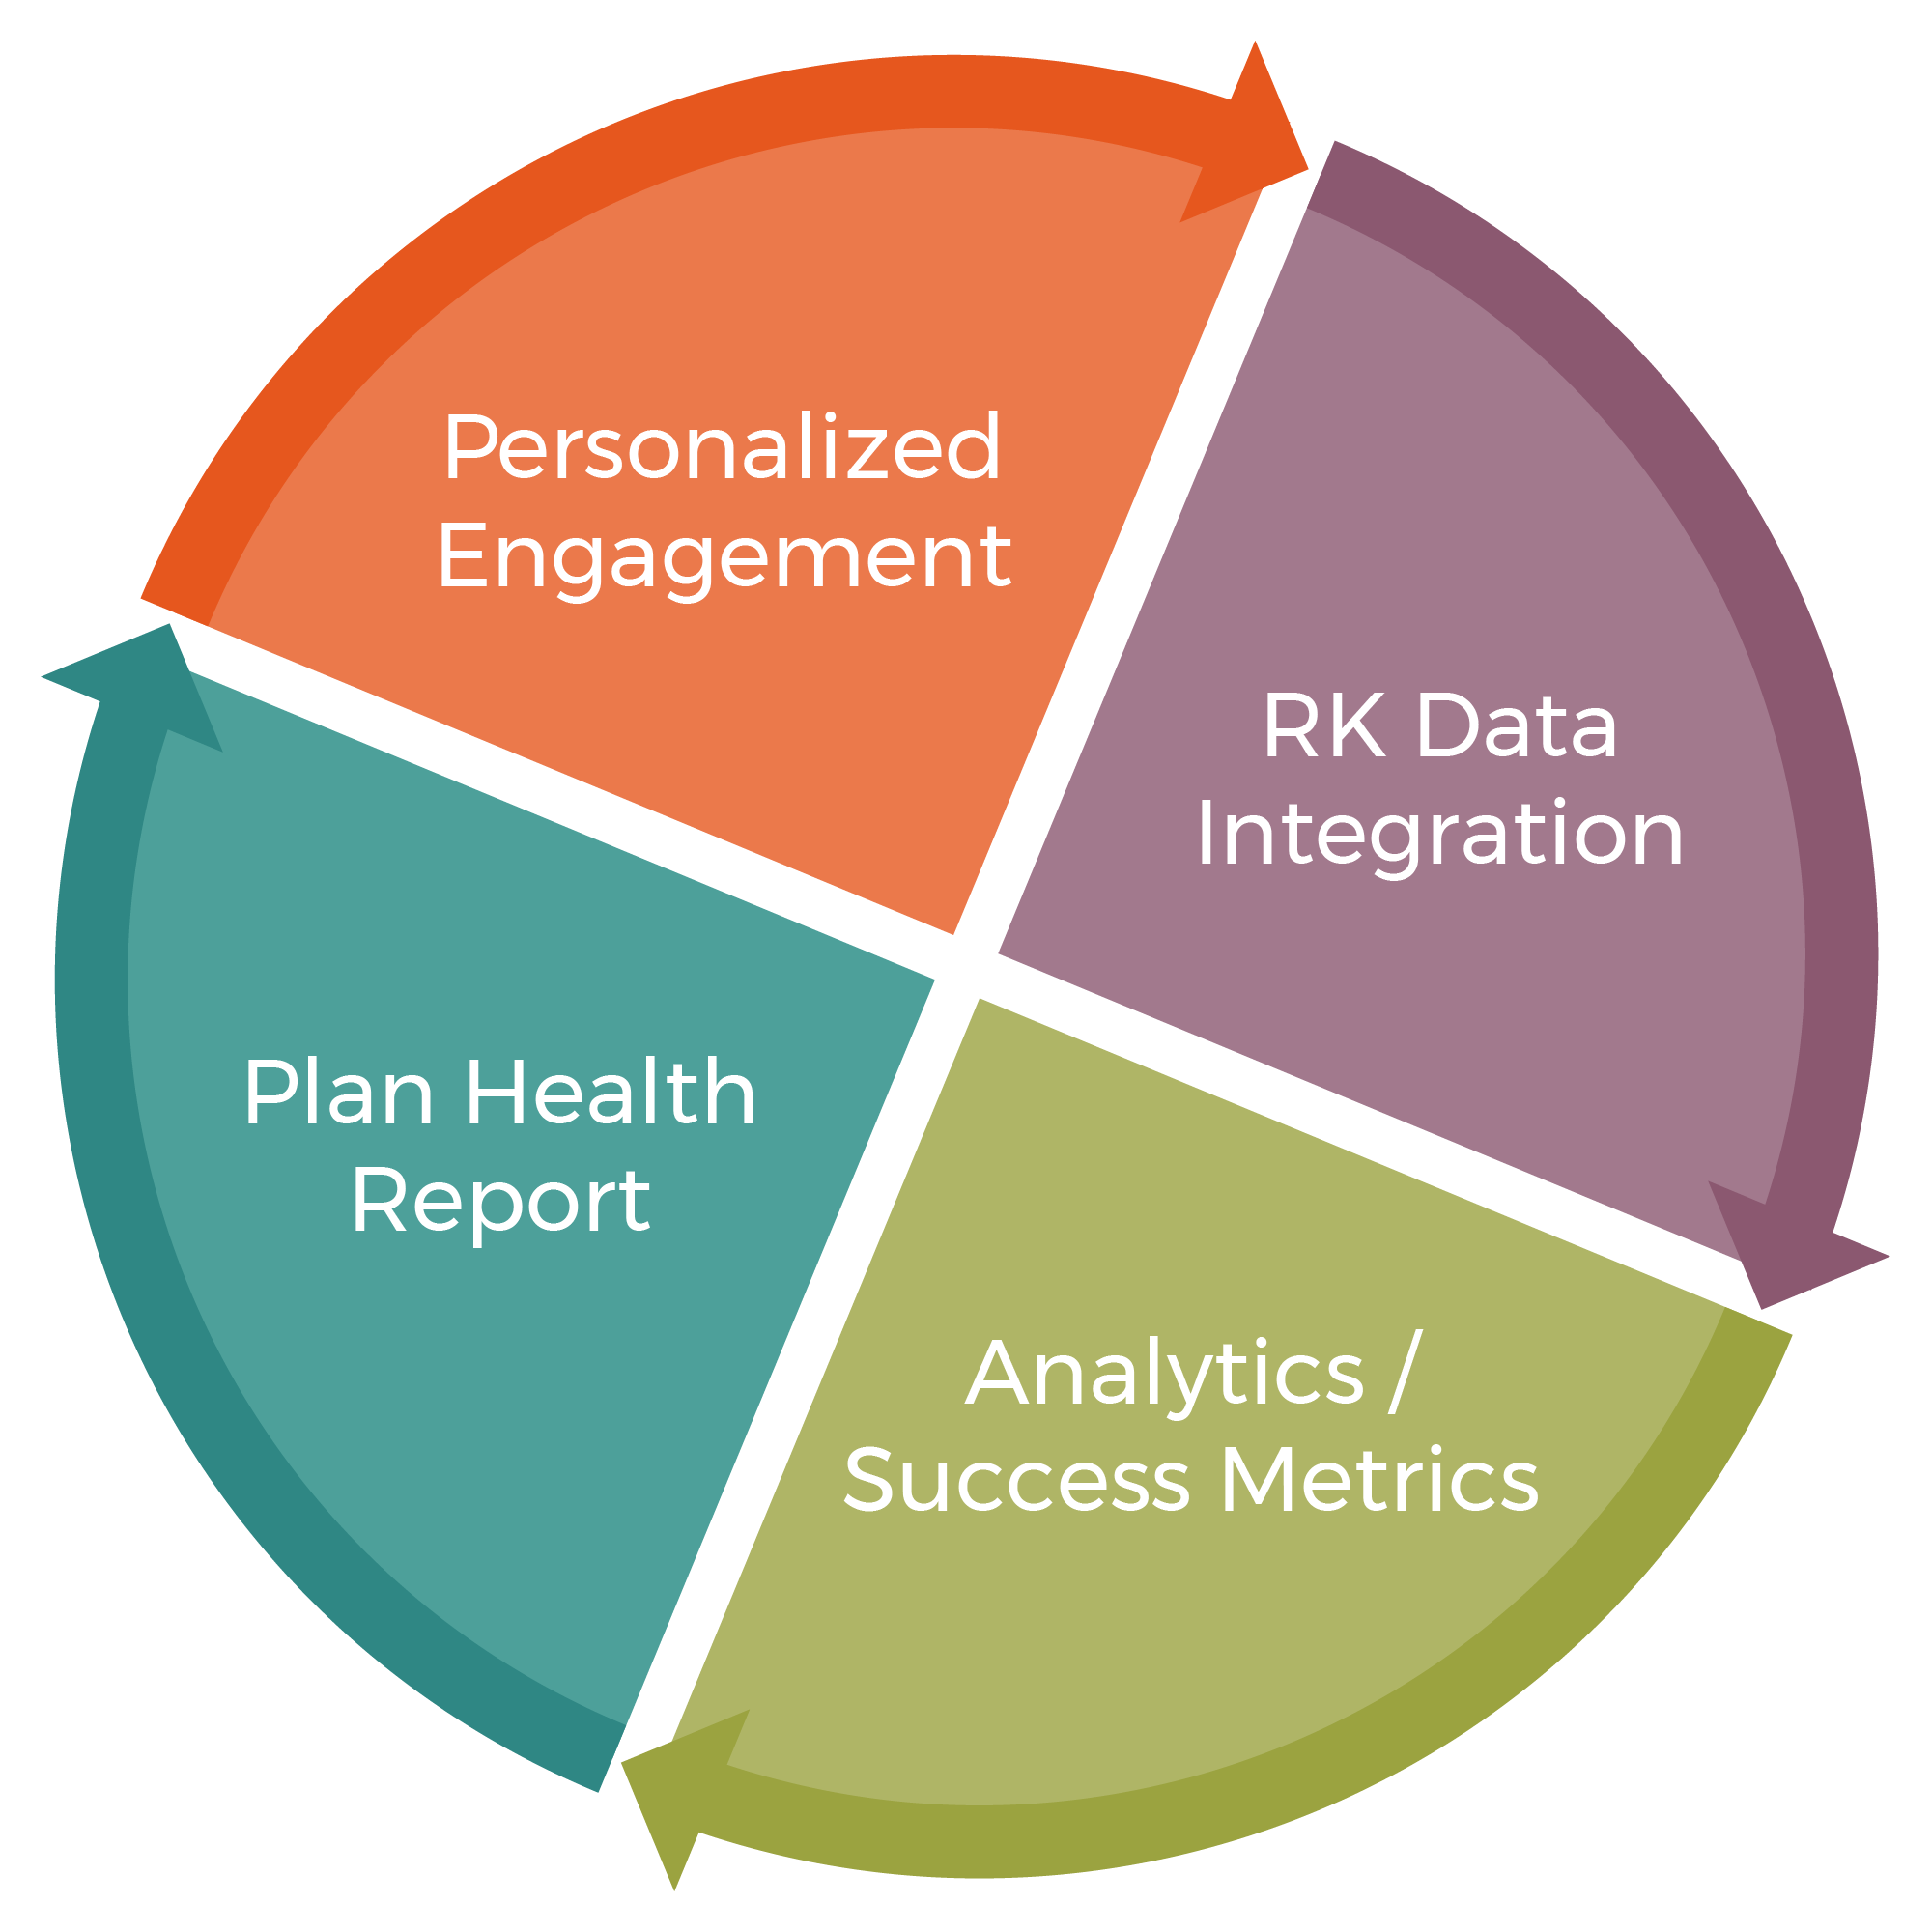 Graphic circle divided into 4 equal slices with arrows around the outer edge conveying a cycle. The 4 slices include: personalized engagement, Recordkeeper data integration, analytics and success metrics, and plan health reporting.